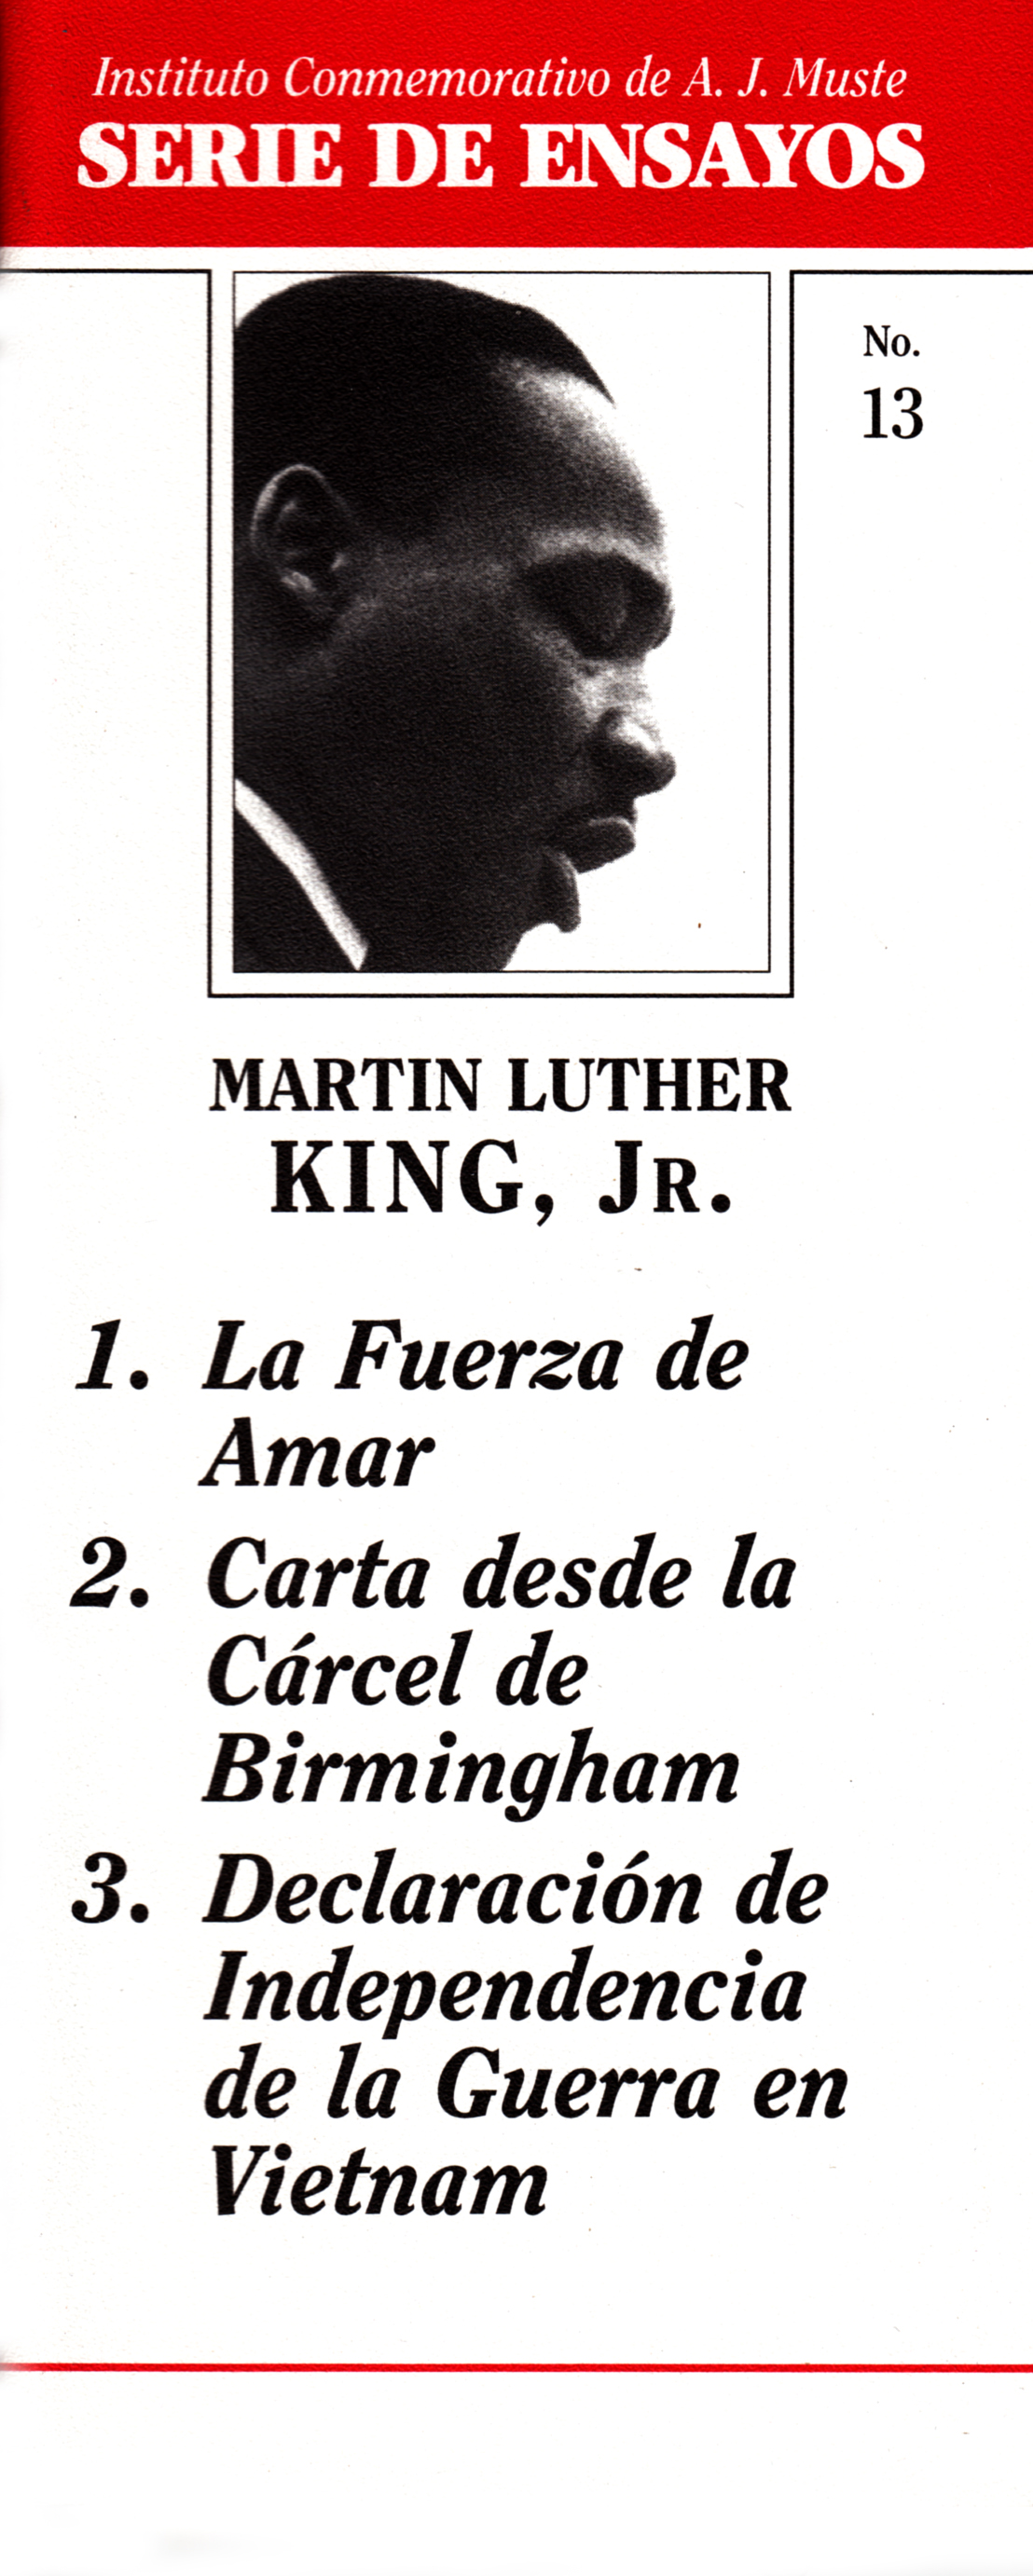 essays on martin luther king Free essays from bartleby | when informing americans across the nation of his dream, dr martin luther king jr proposed an unforgettable speech that would.